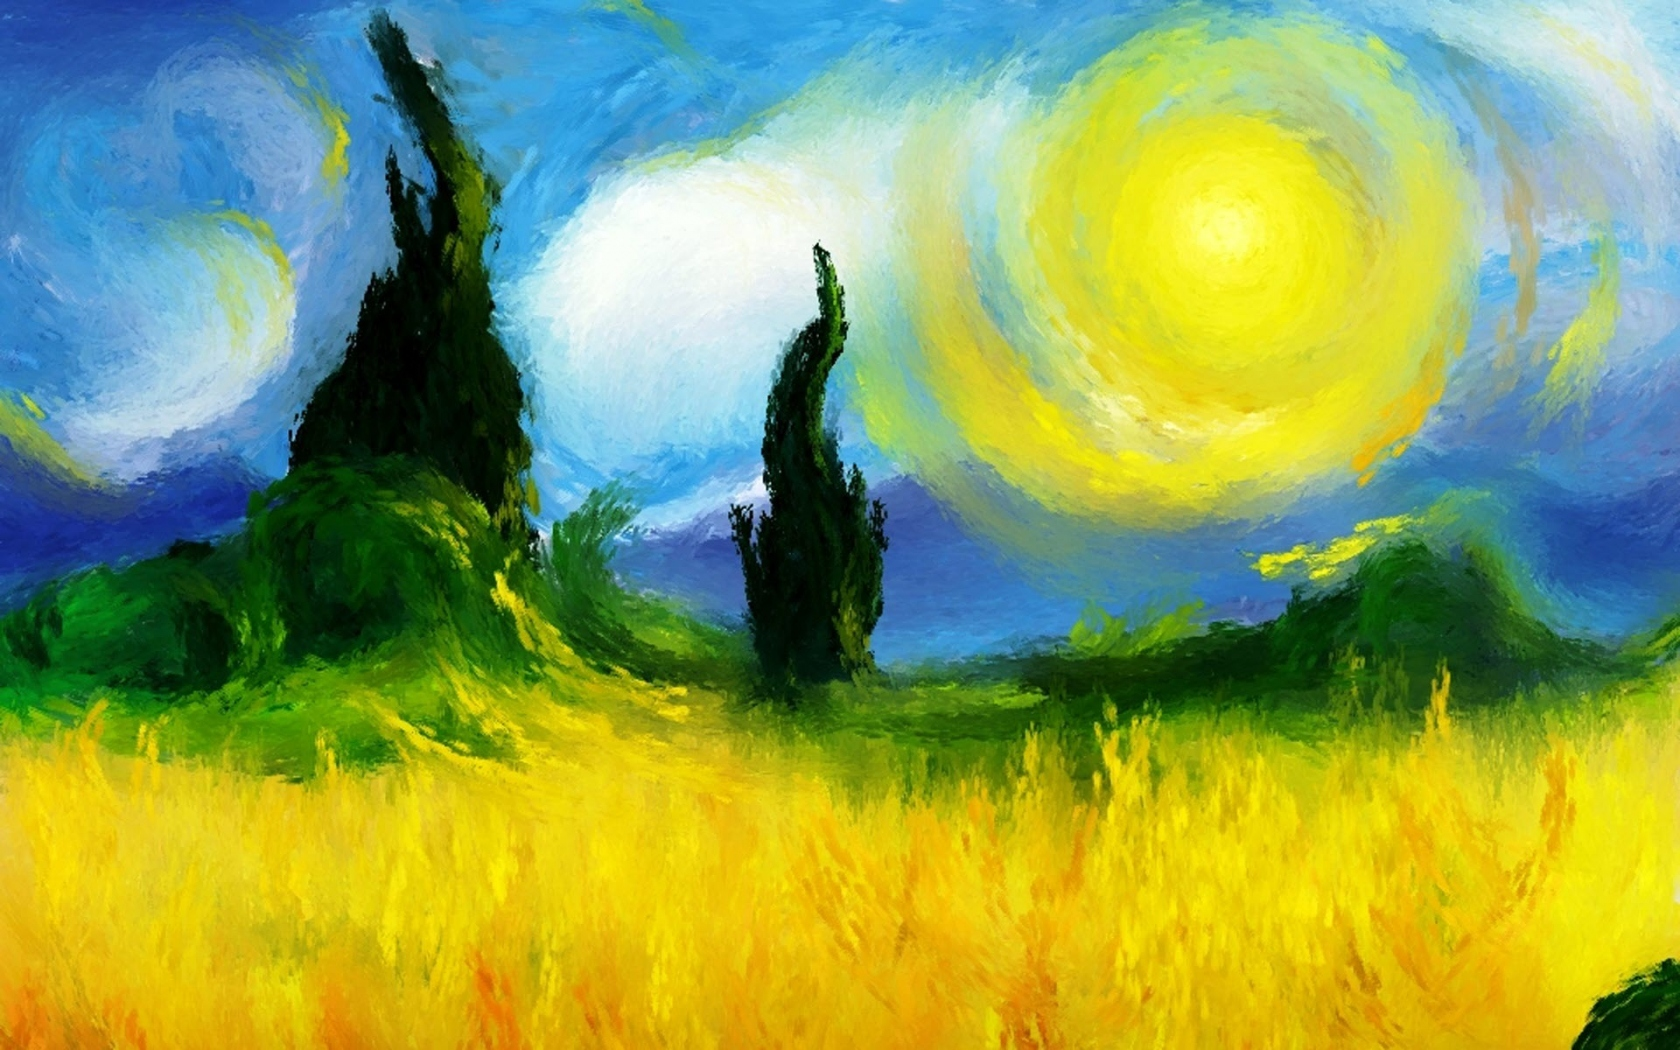 wallpapers art painting - photo #44